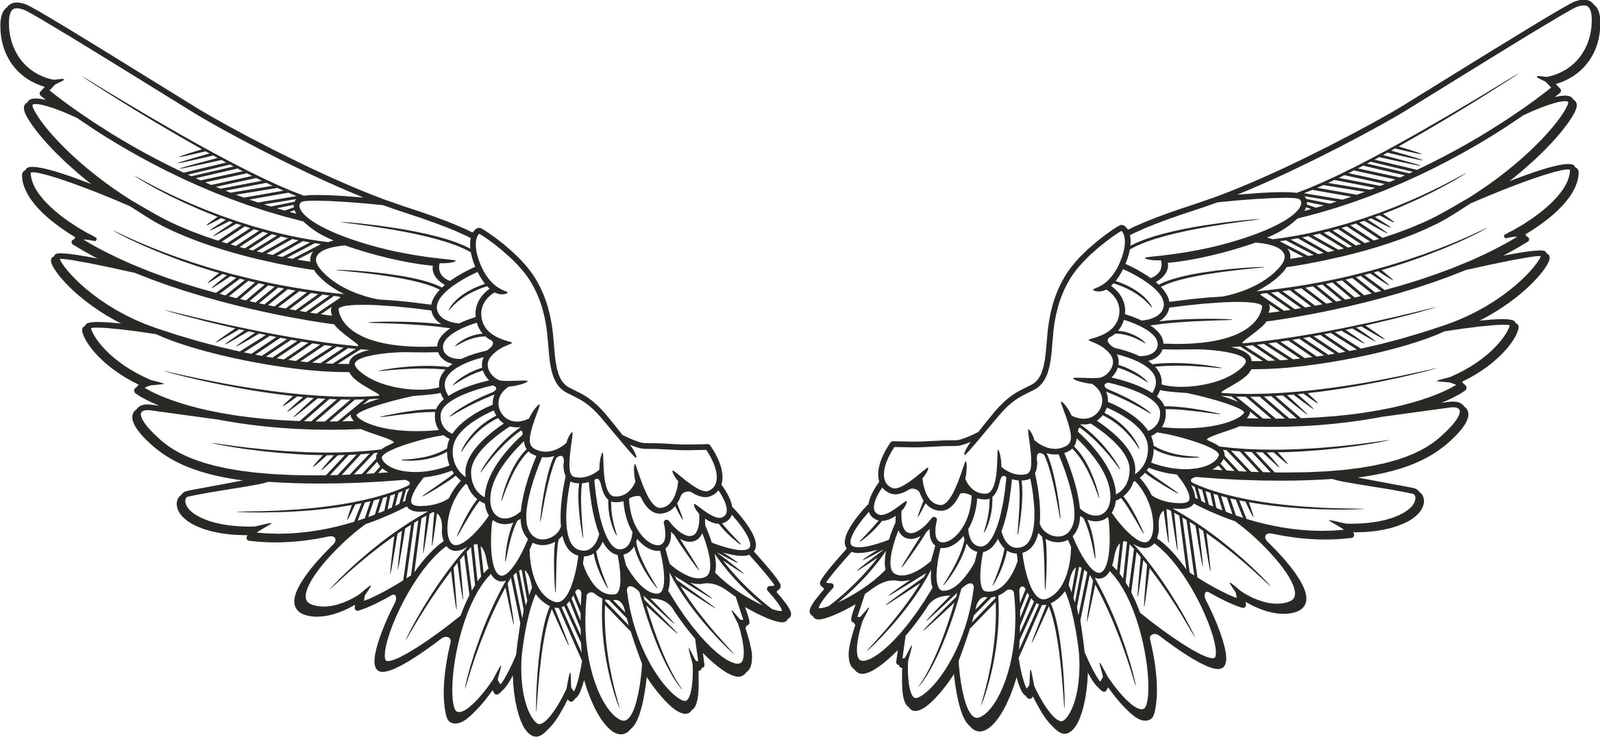 Angel Wing Drawing at GetDrawings.com | Free for personal